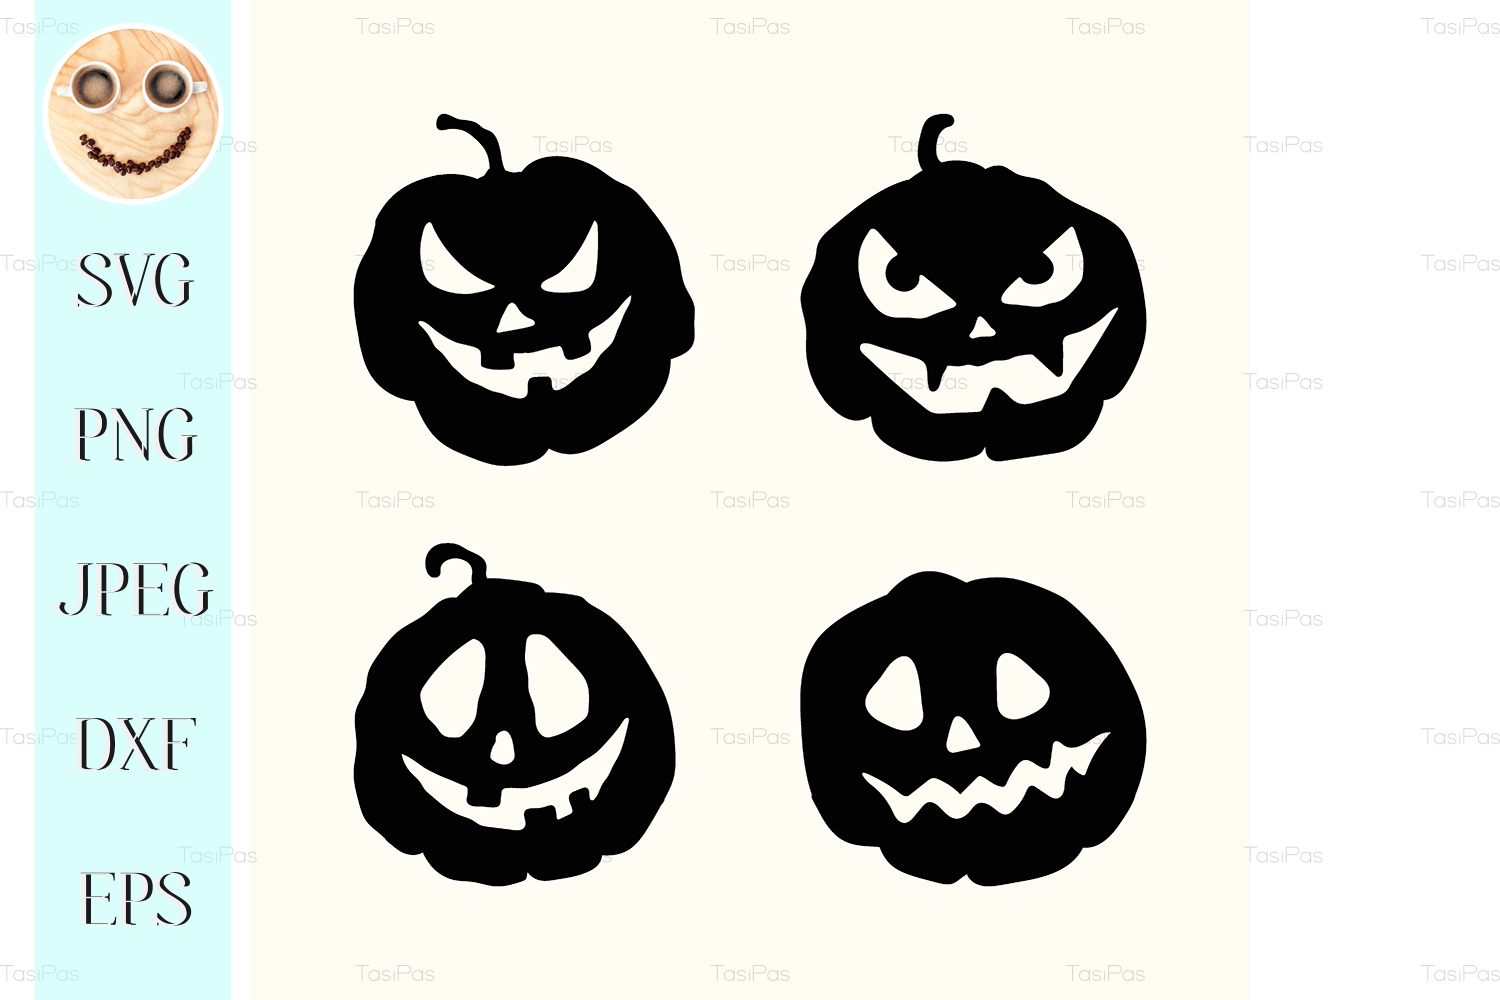 Halloween Silhouette Spooky Face Pumpkin Graphic By Tasipas